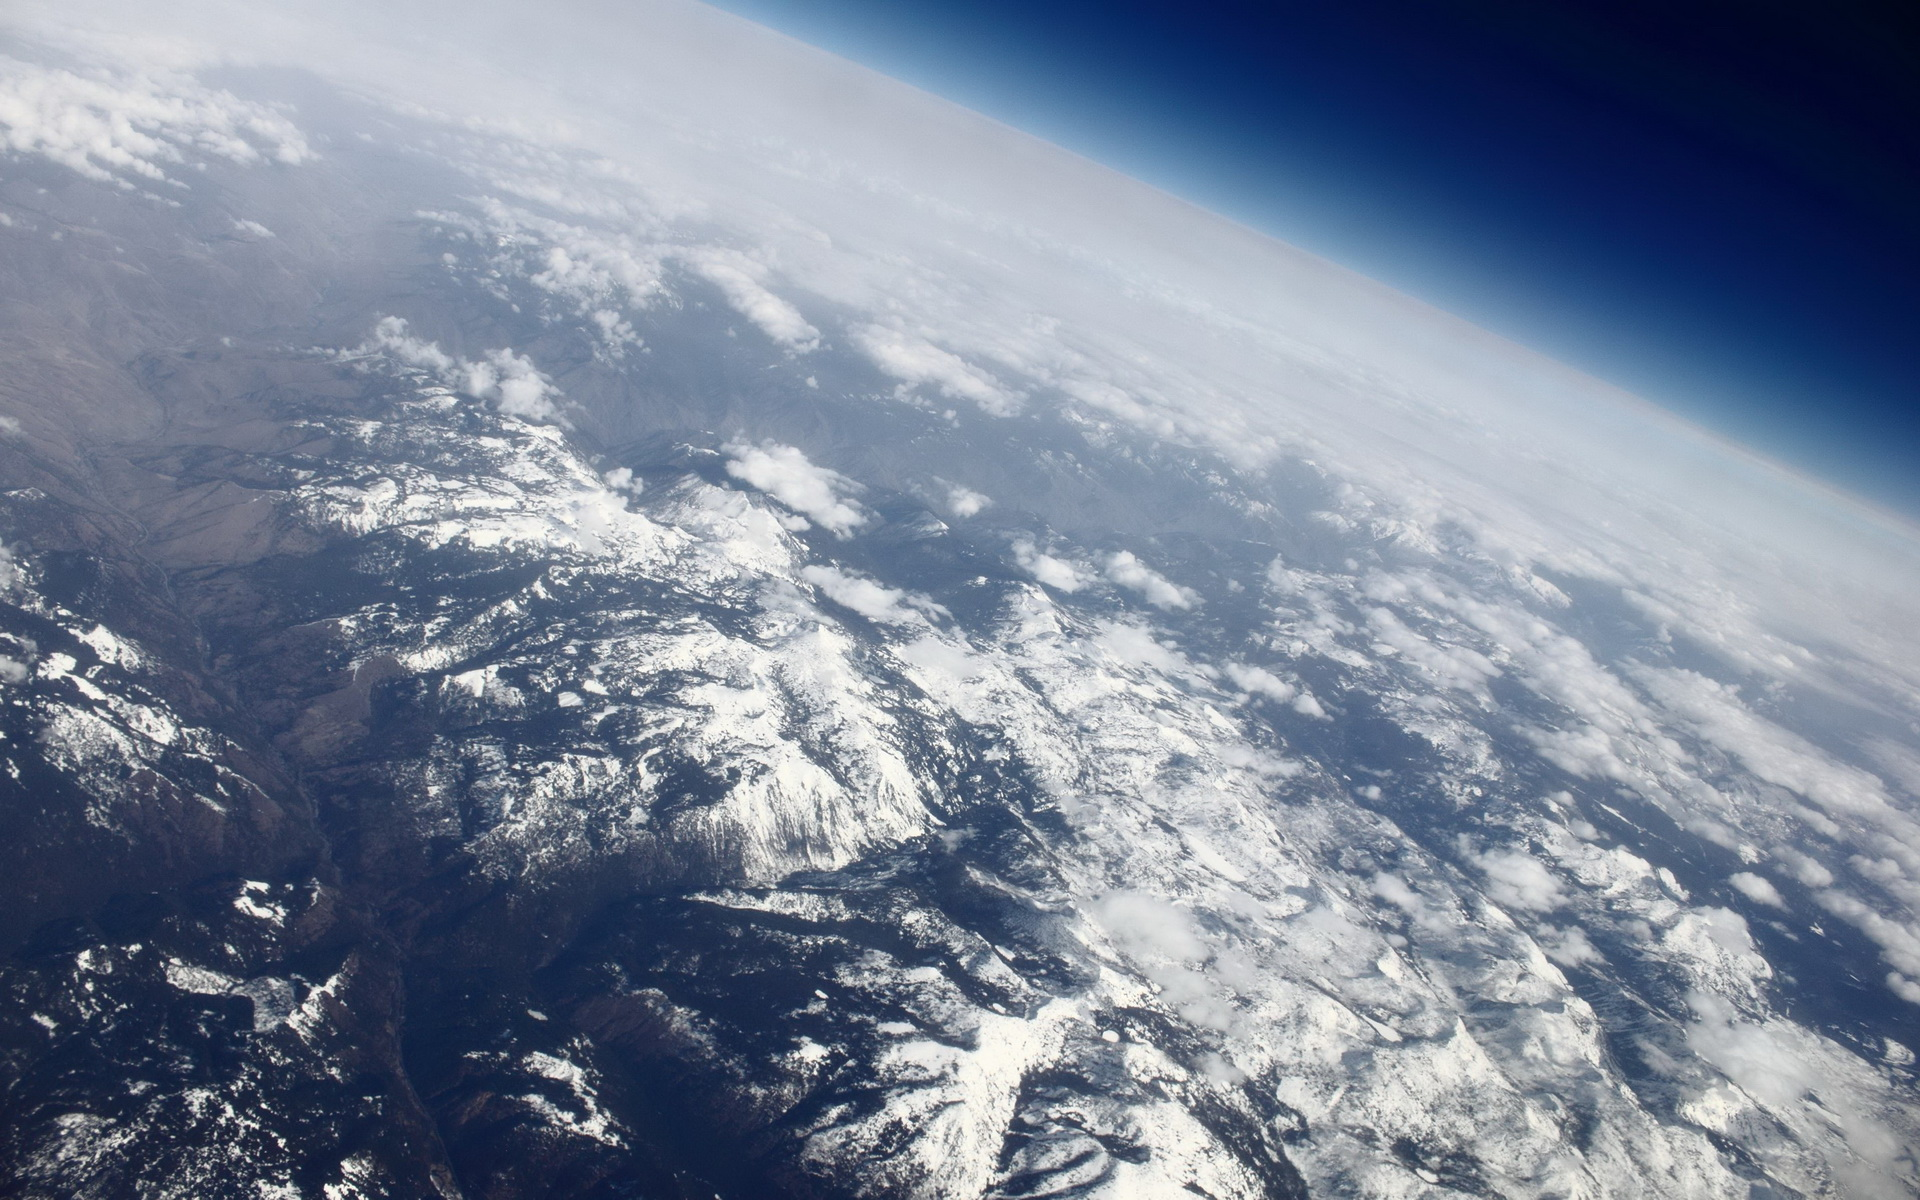 Hd Earth Wallpaper Widescreen Over The Rocky Mountains Somewhere Above Montana Or